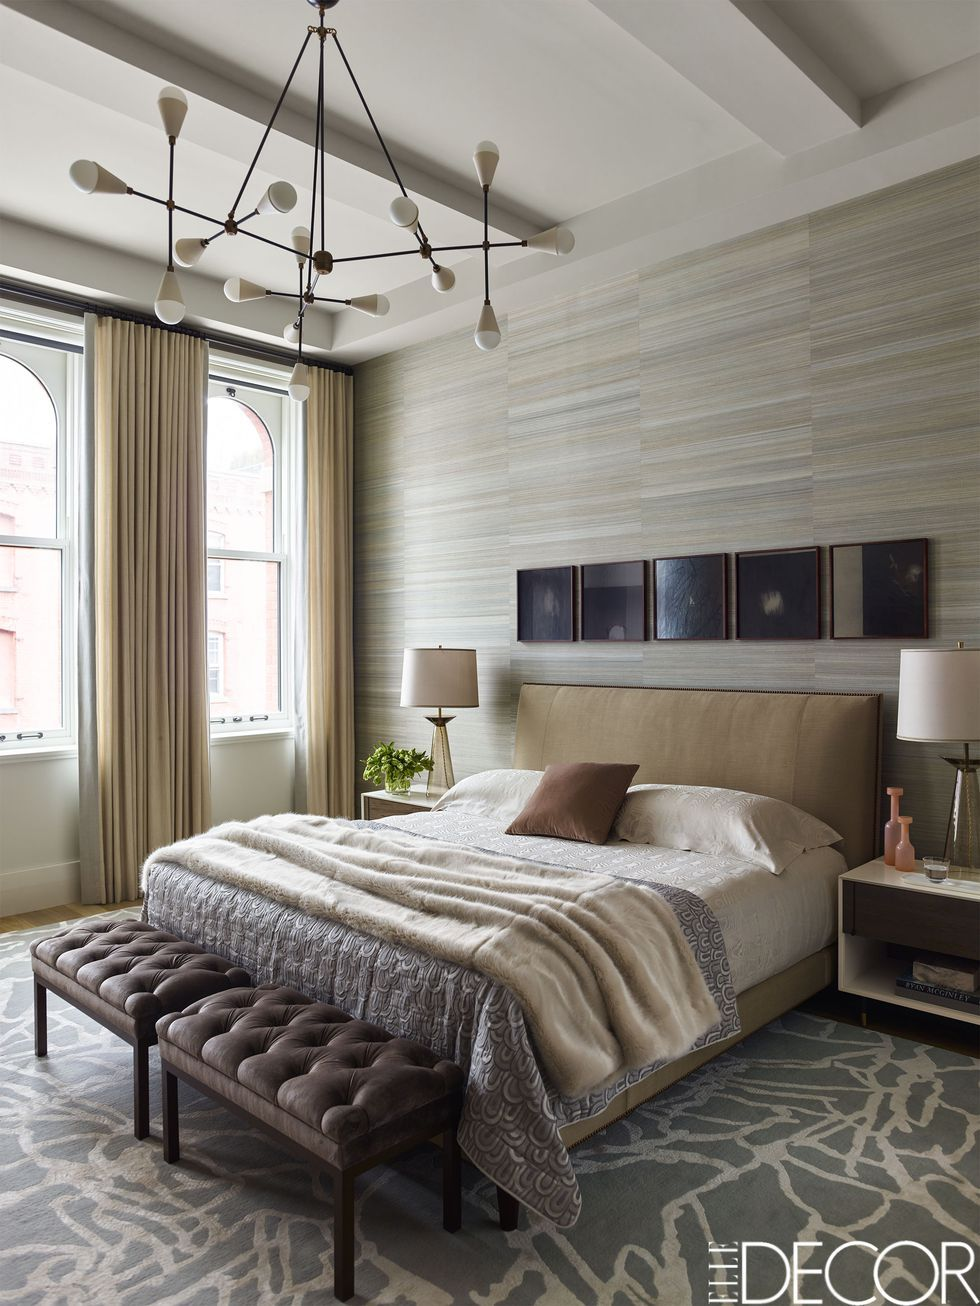 apartment lighting ideas & Small Space Decorating Ideas - Small Apartments and Room Design Tips